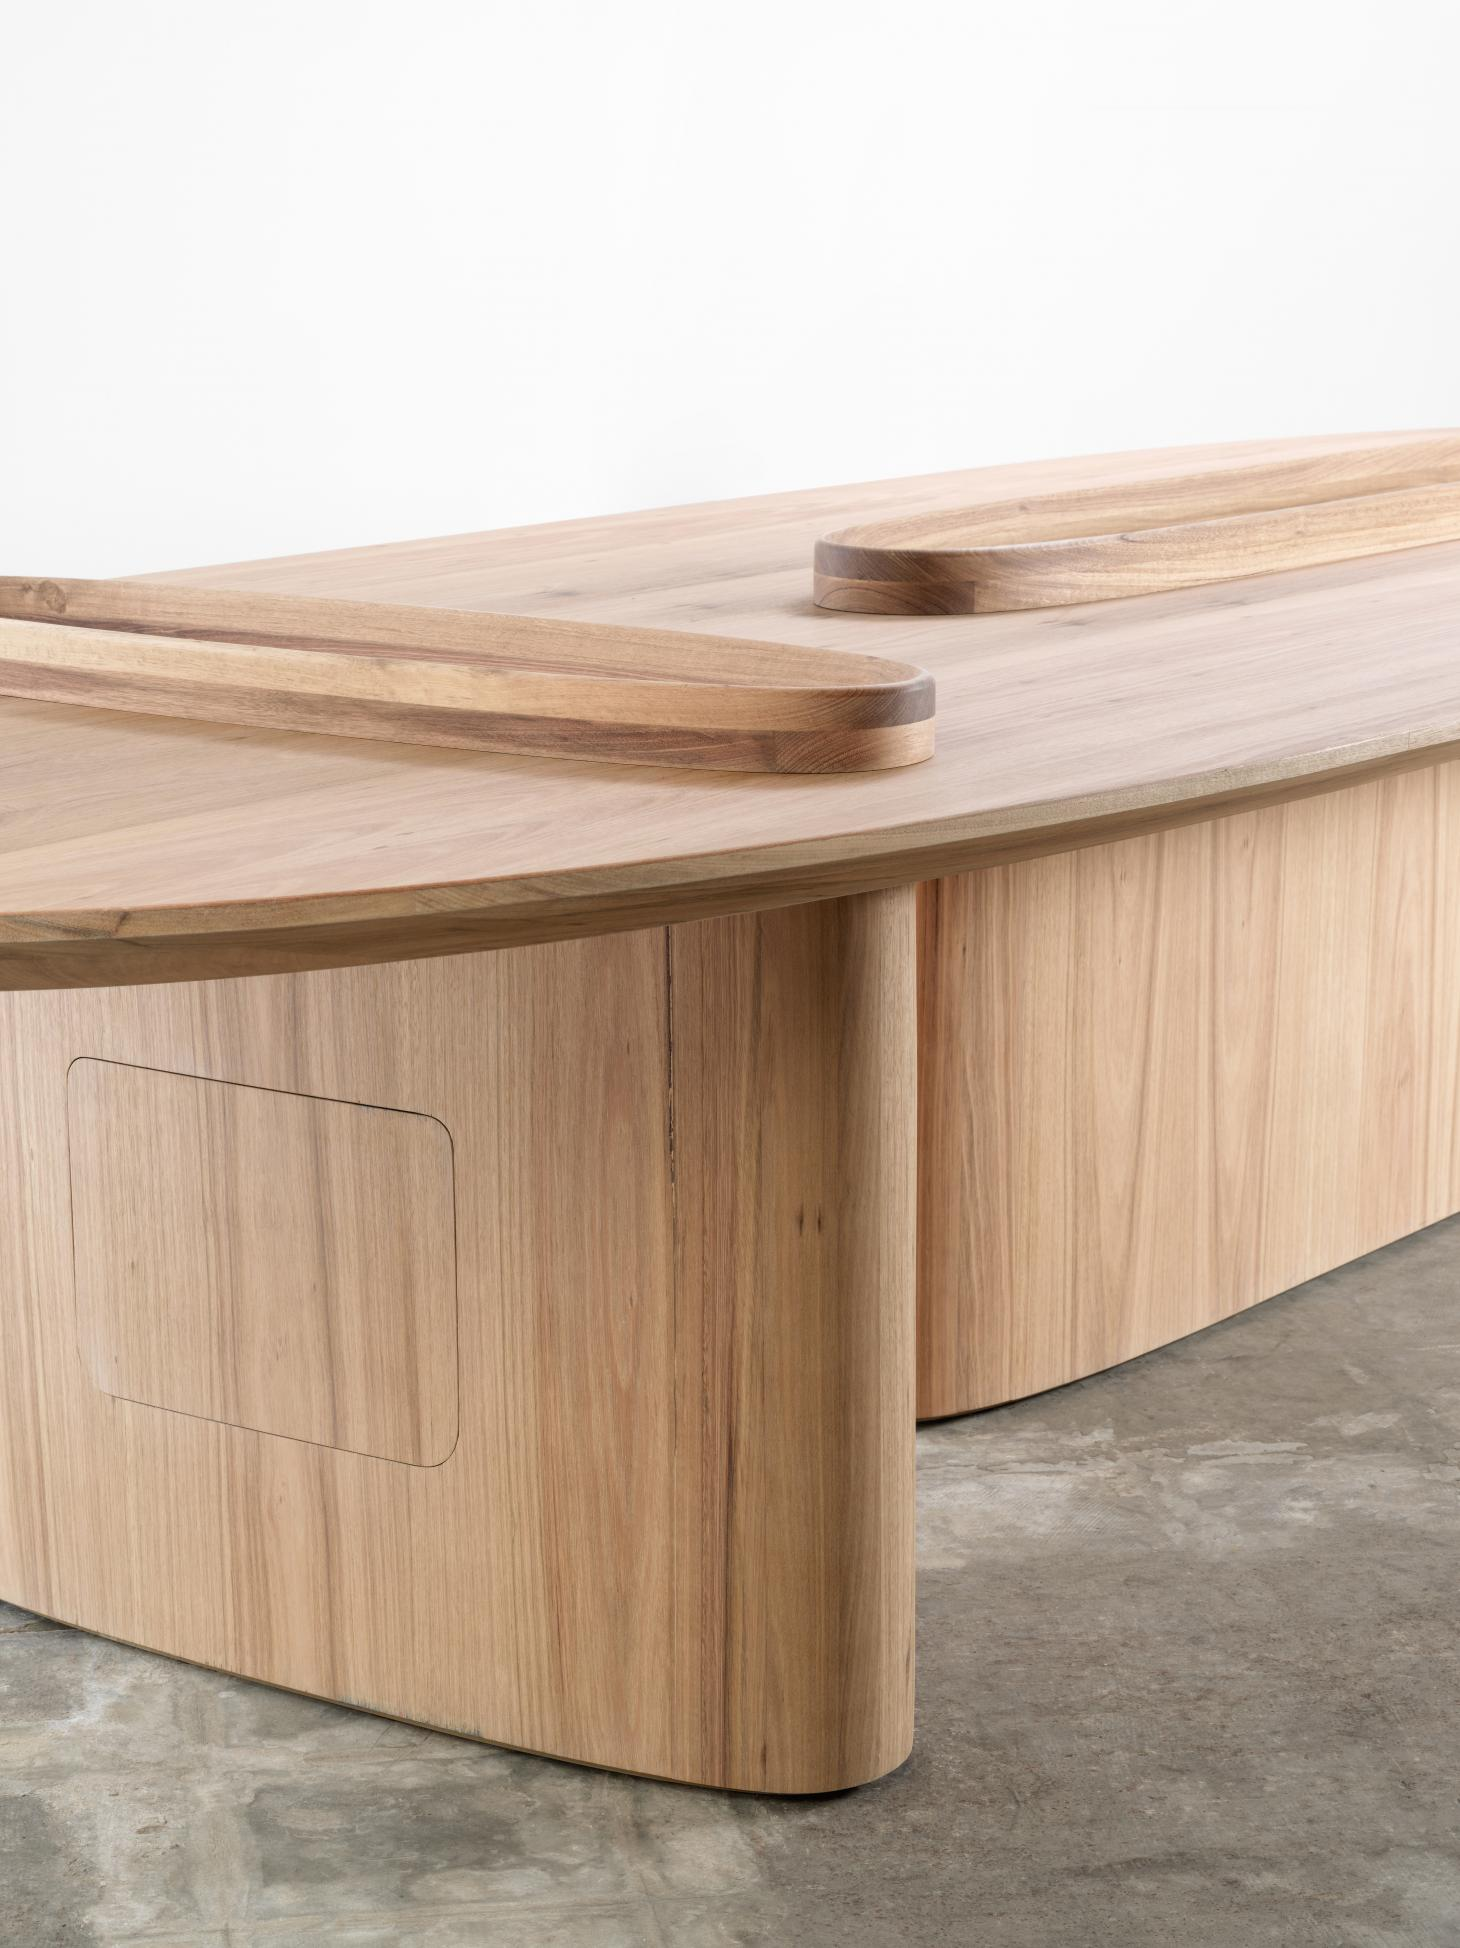 Snøhetta's oval shaped Intersection Worktable is made from Tasmanian Oak